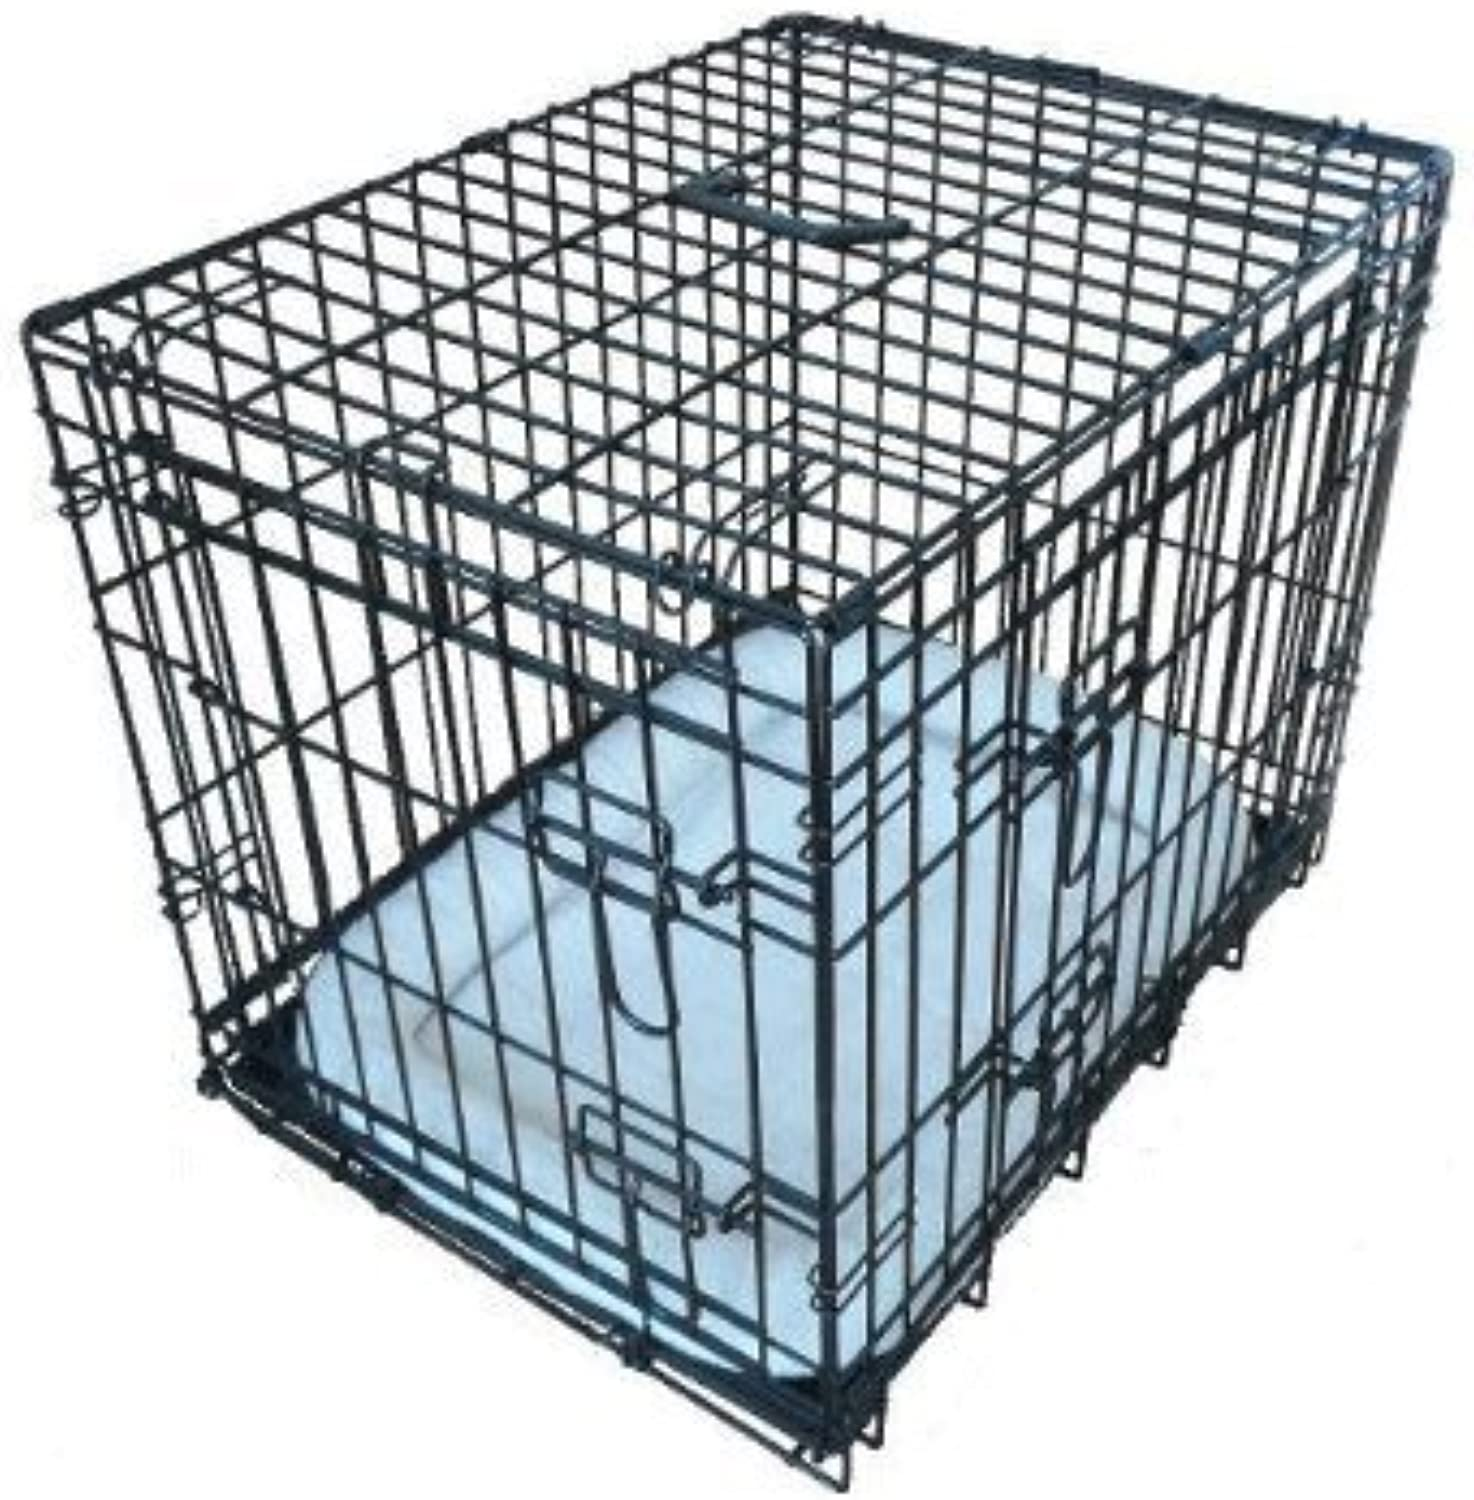 EllieBo Deluxe Extra Strong 2 Door Folding Dog Puppy Cage with Faux Sheepskin Bed Medium 30 inch Black